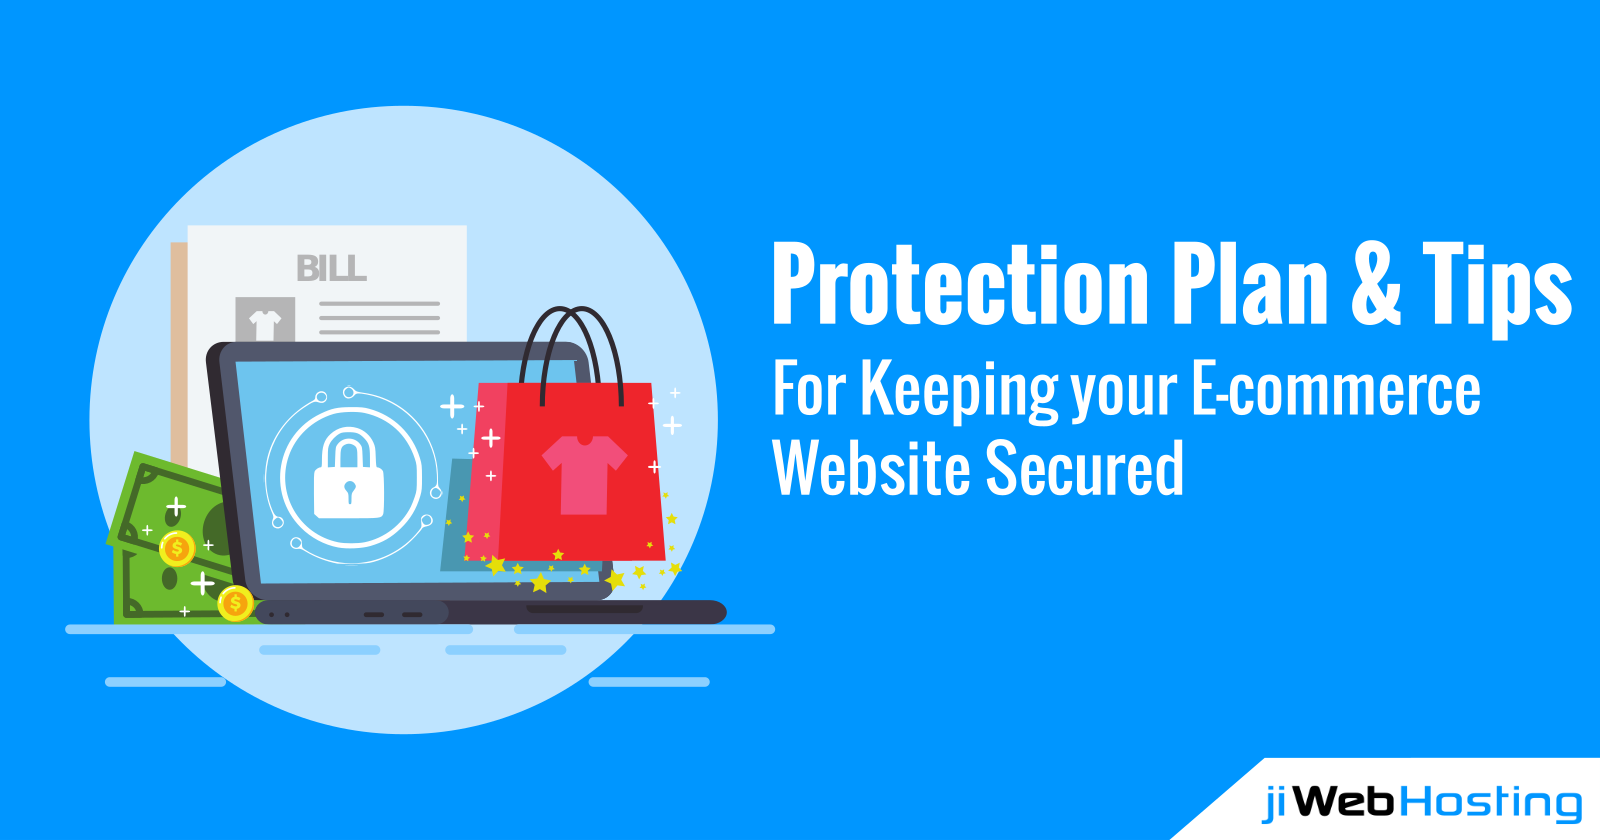 Protection Plan and Tips For Keeping Your E-Commerce Website Secured